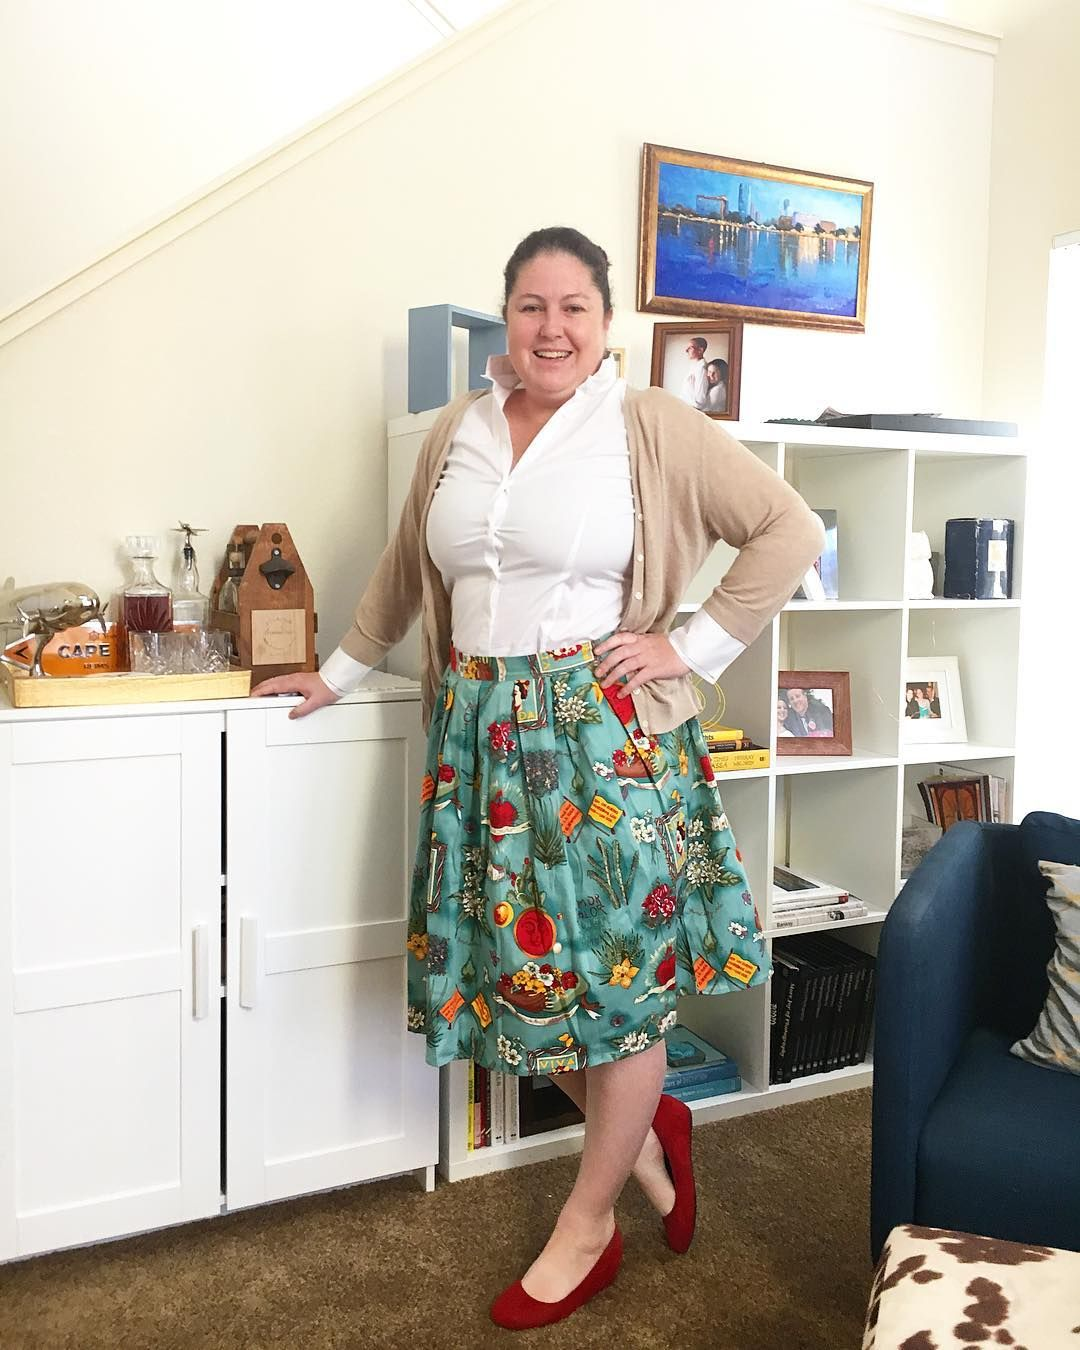 72f89cc664 The grace karin skirt has frida kahlo on it and paired with some red suede  wedges gives a little extra oomph! Nice.,